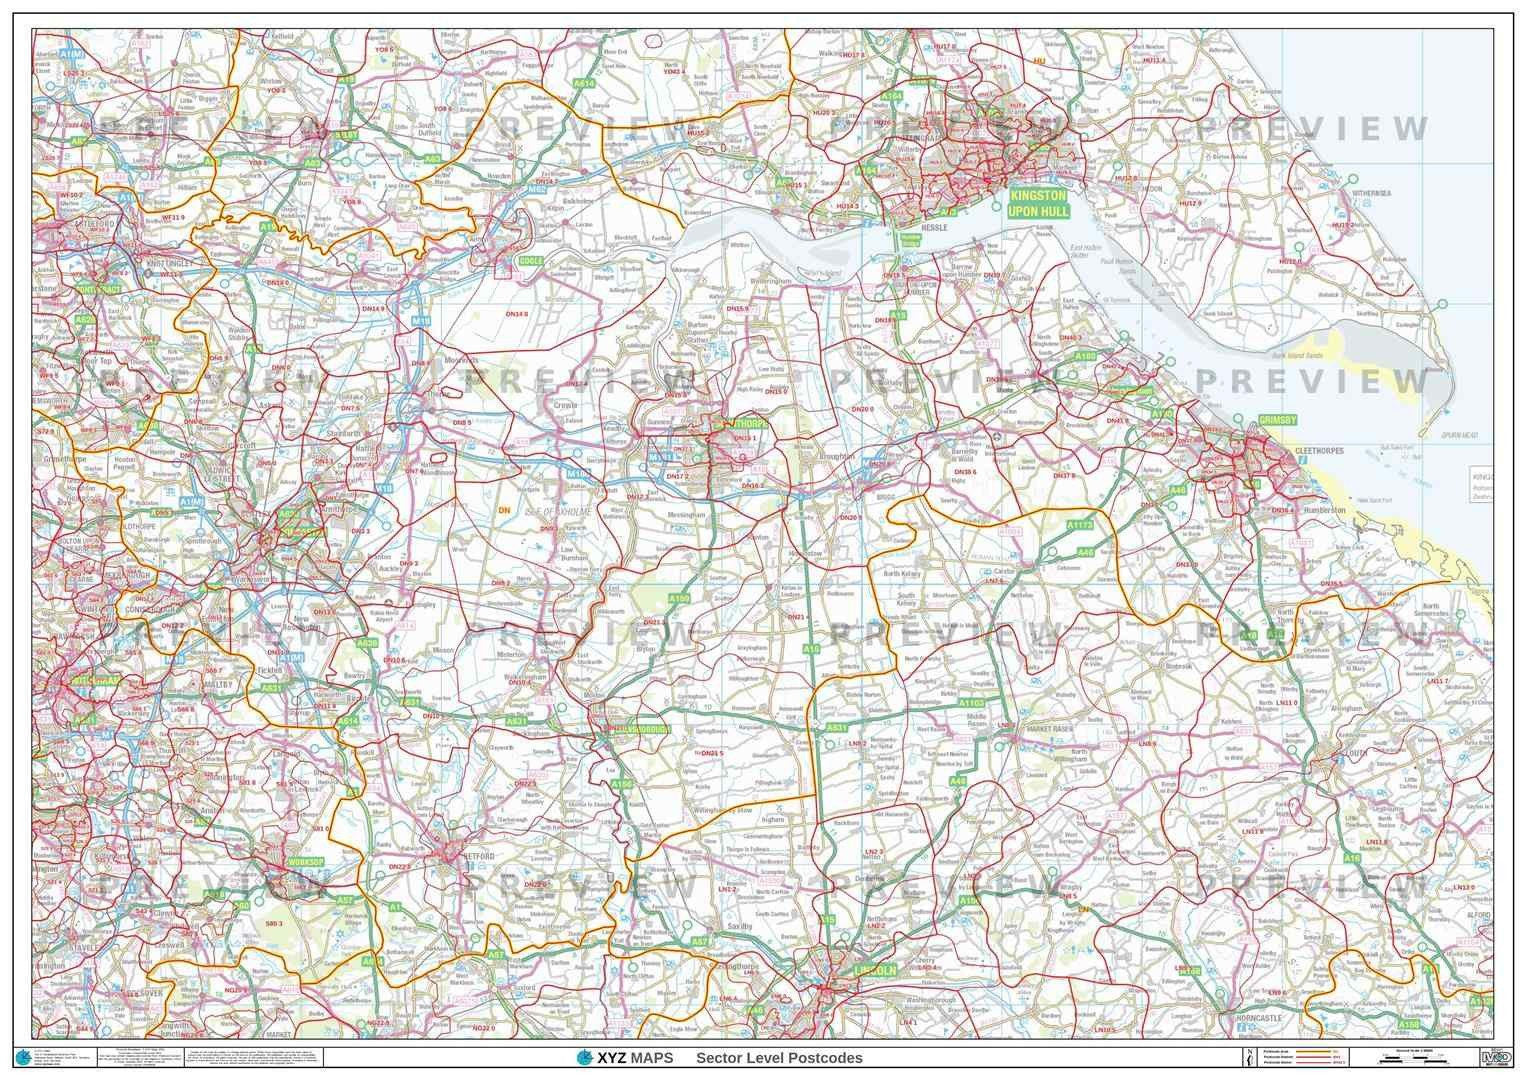 DN Postcode Map for the Doncaster Postcode Area GIF or PDF Download ...